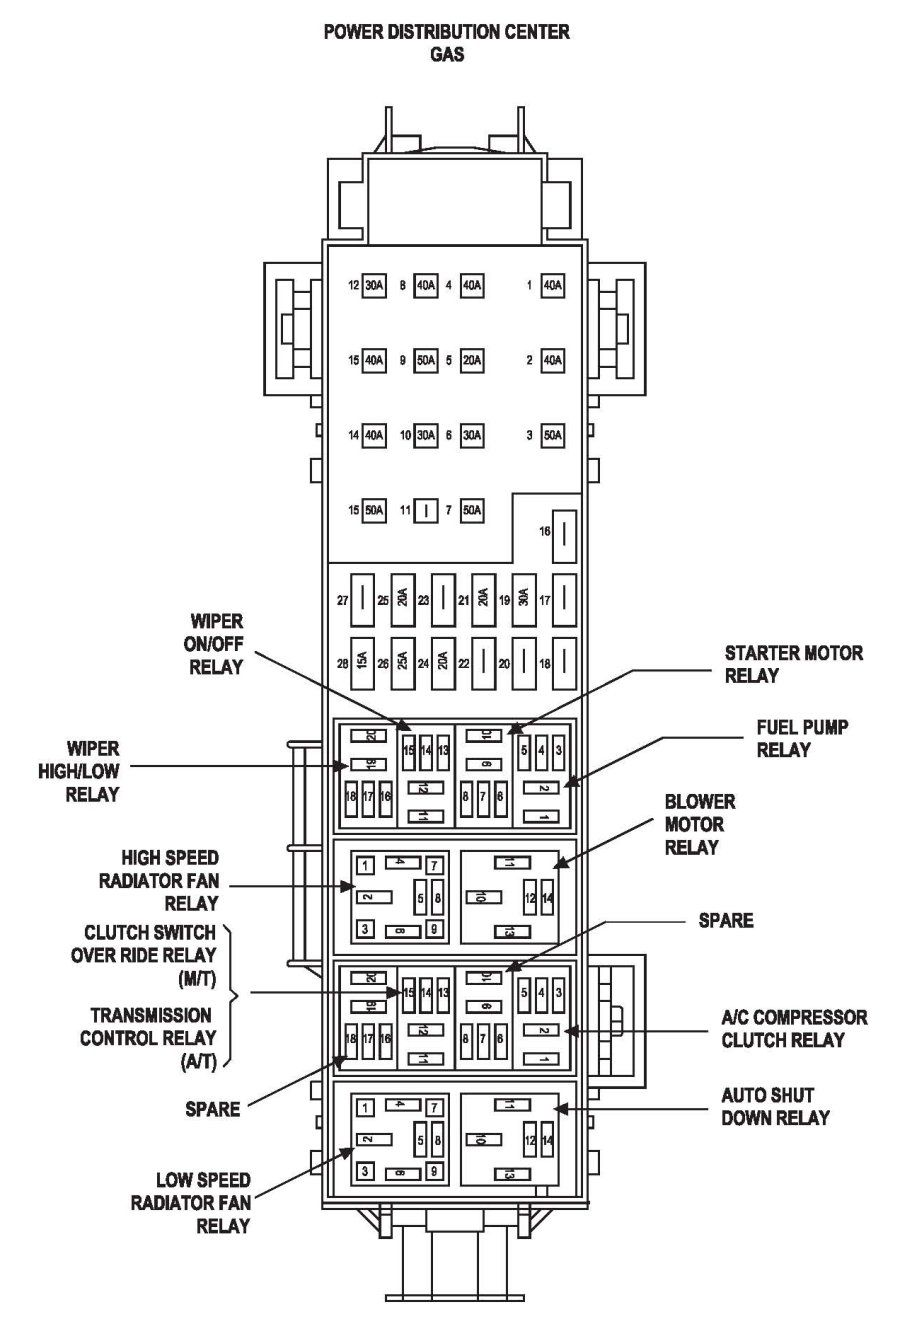 b3536c3739783eb19f827744cc42c3c4 jeep liberty fuse box diagram image details jeep liberty 2005 jeep wrangler fuse box diagram at reclaimingppi.co